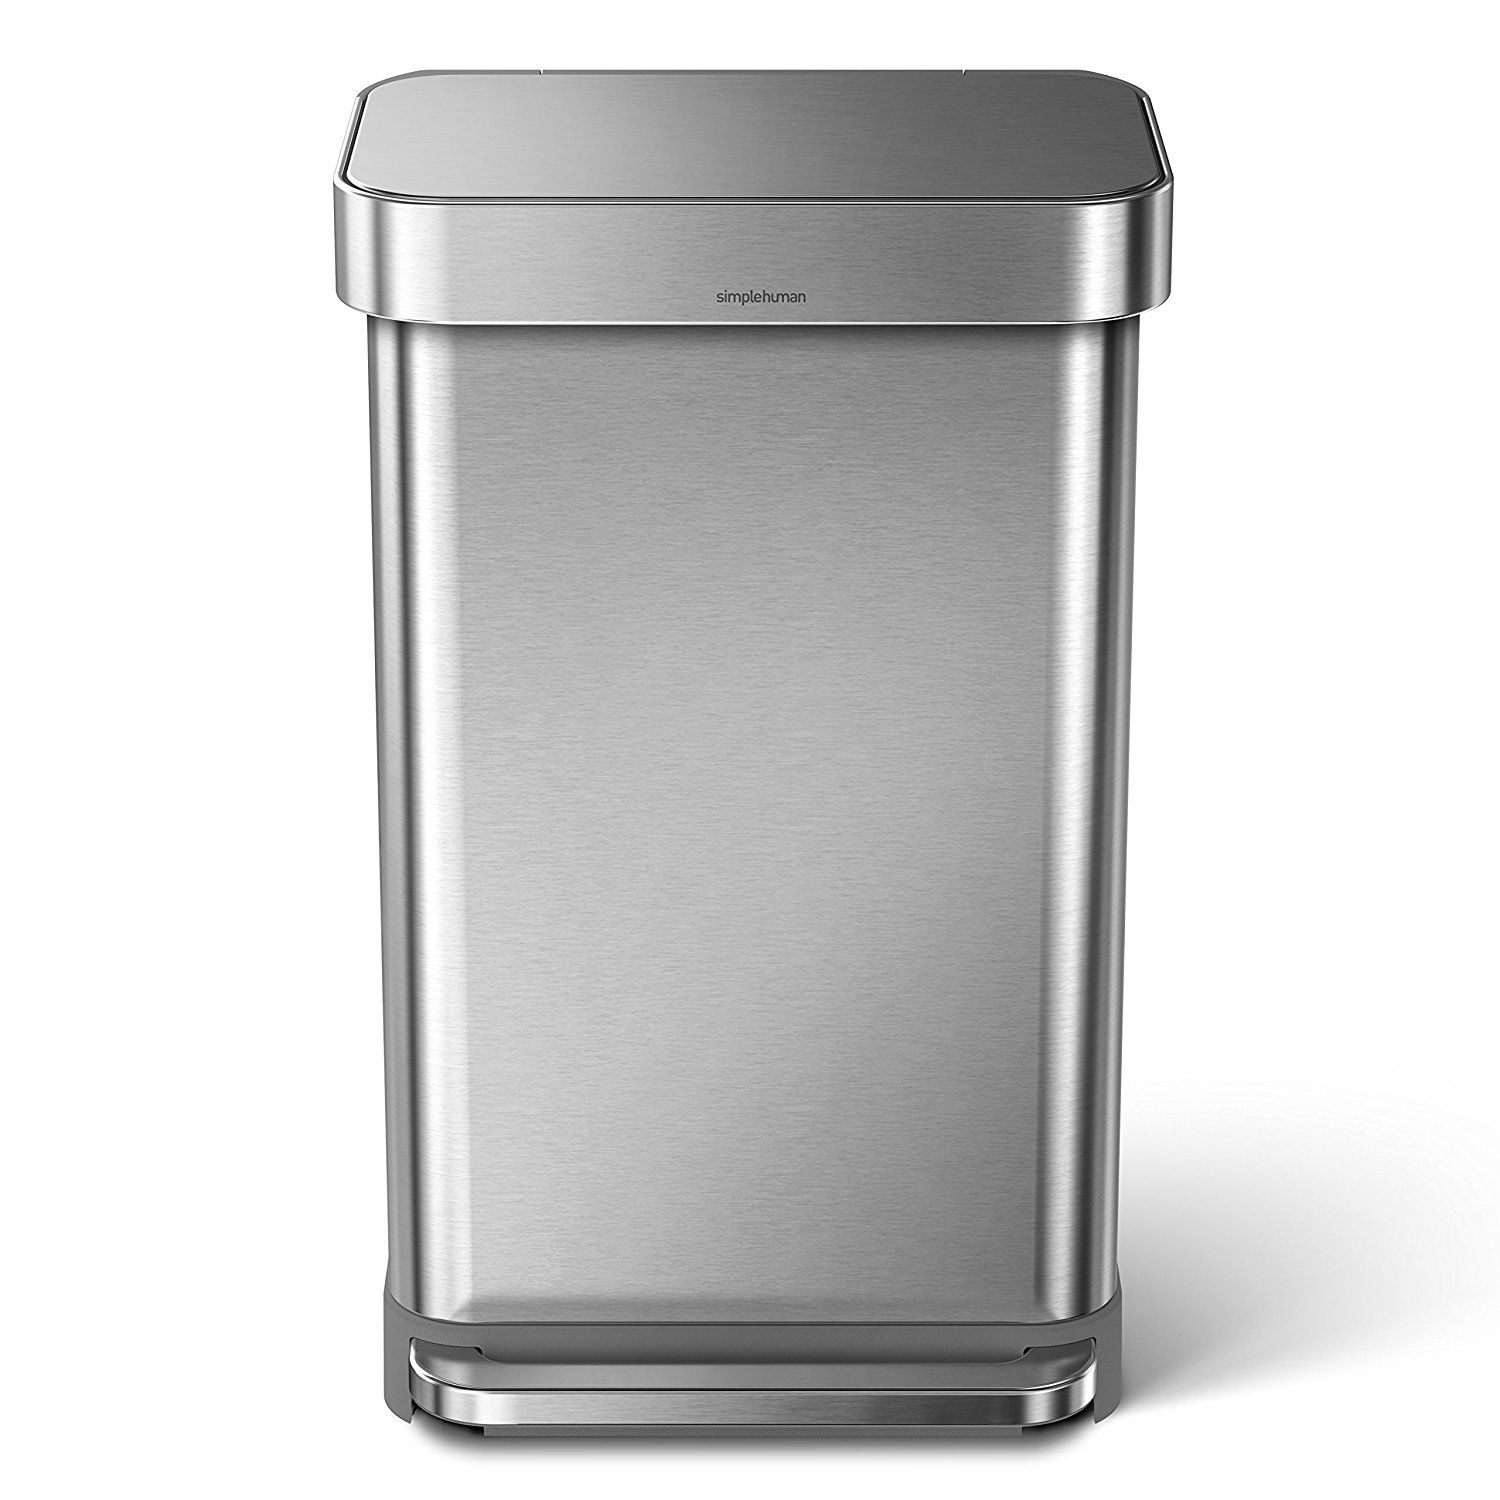 Best overall simplehuman 45 liter 12 gallon stainless steel rectangular kitchen step trash can with liner pocket